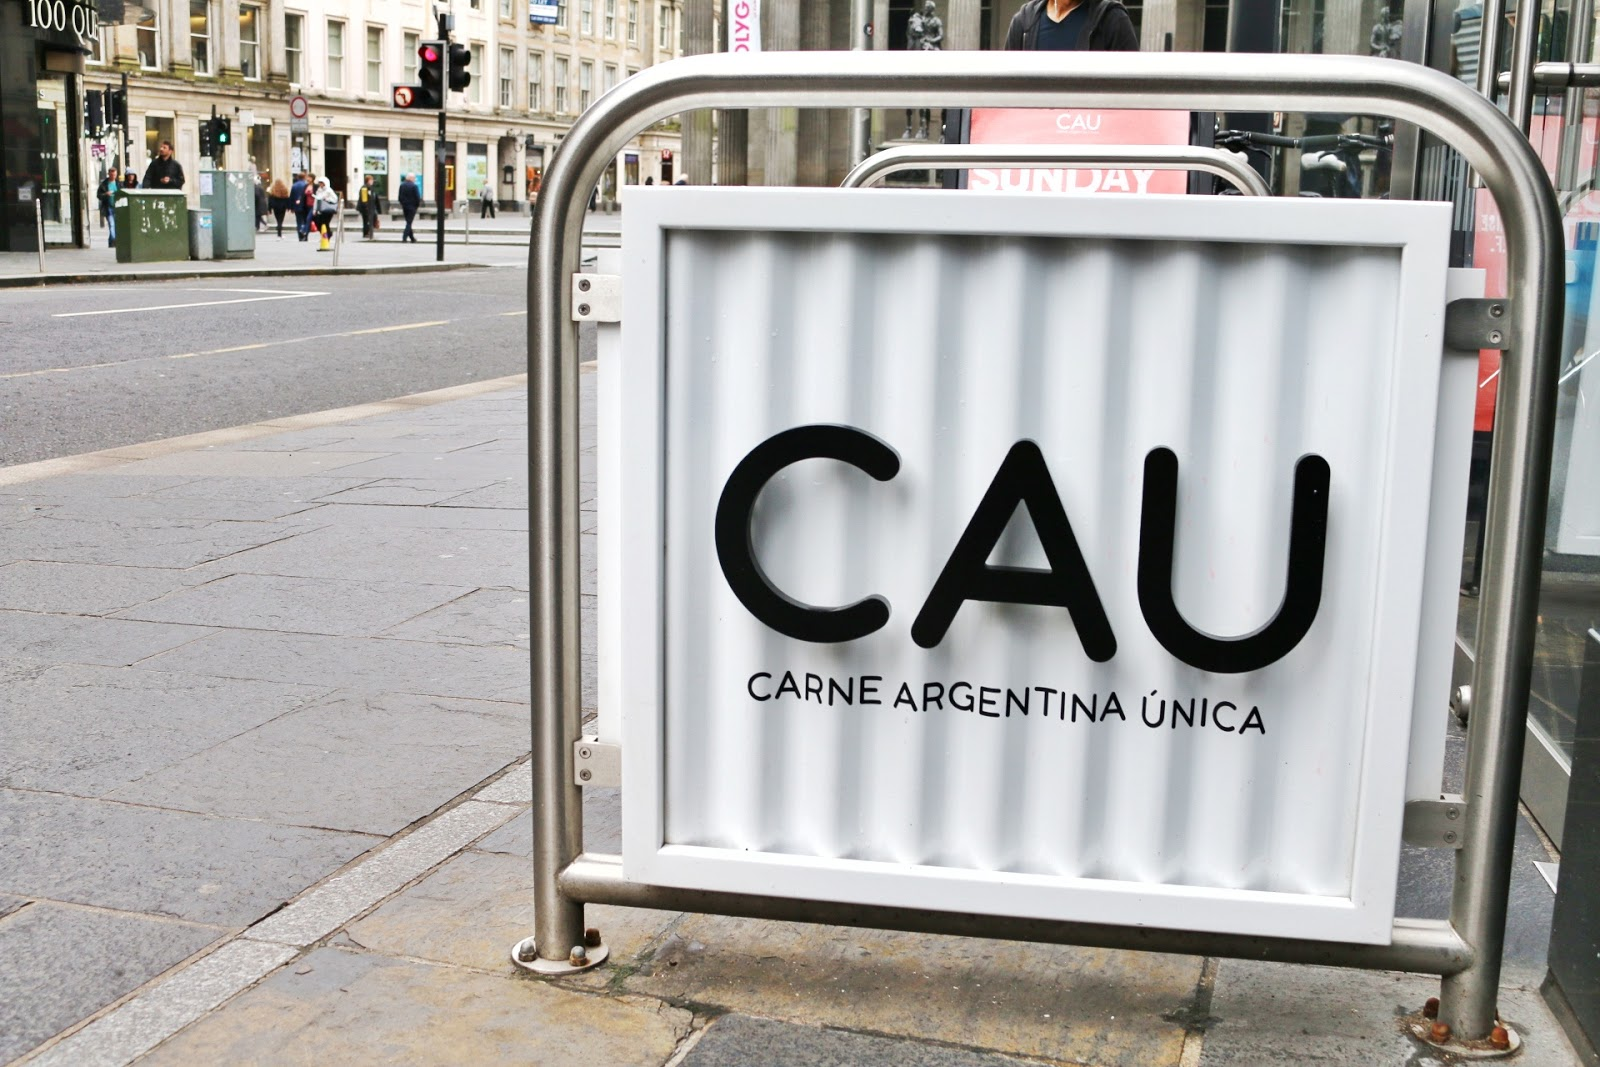 Close up of the CAU Glasgow sign which is a white board with black writing